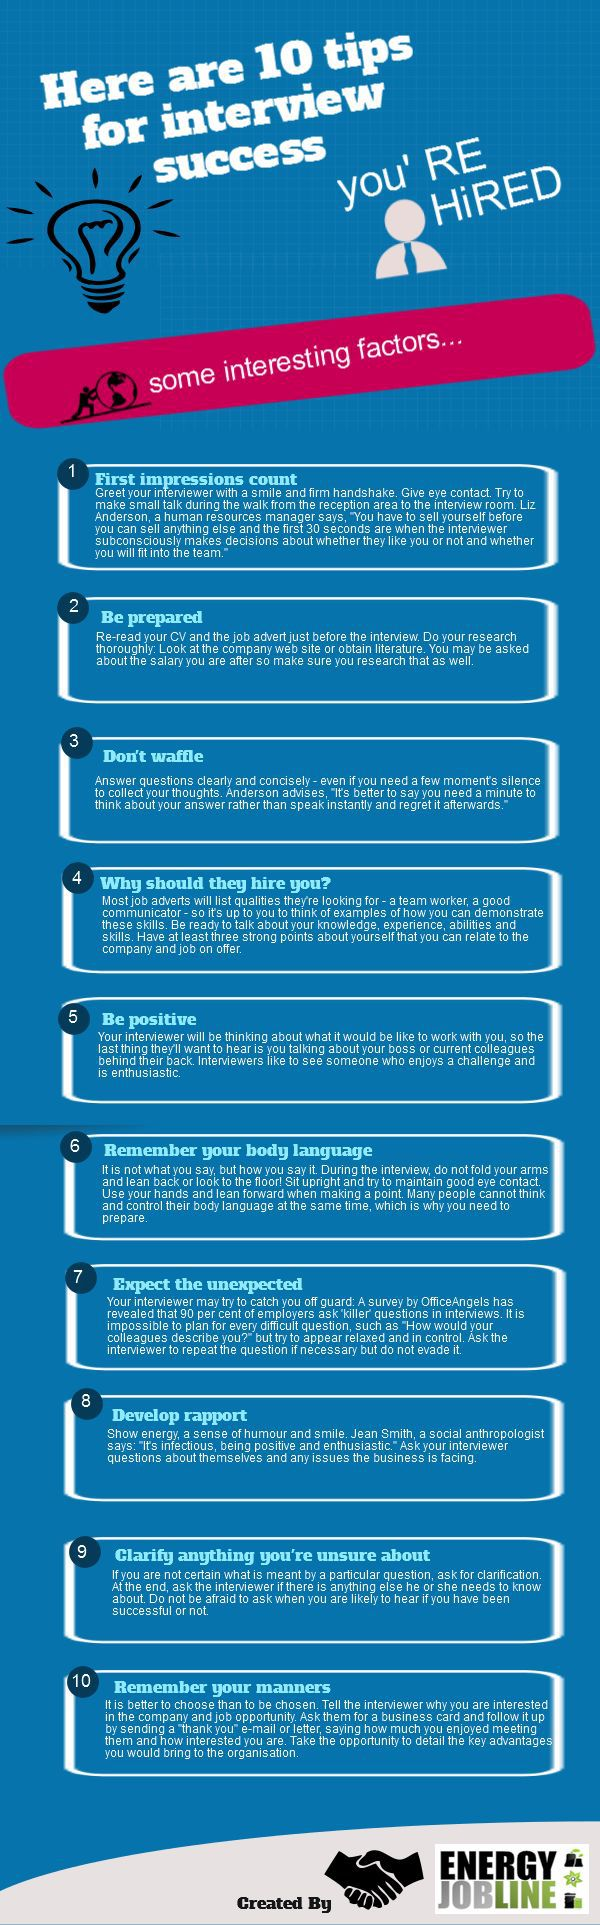 Infographic 10 Tips For Interview Success Job Interview Questions Interview Tips Job Interview Tips